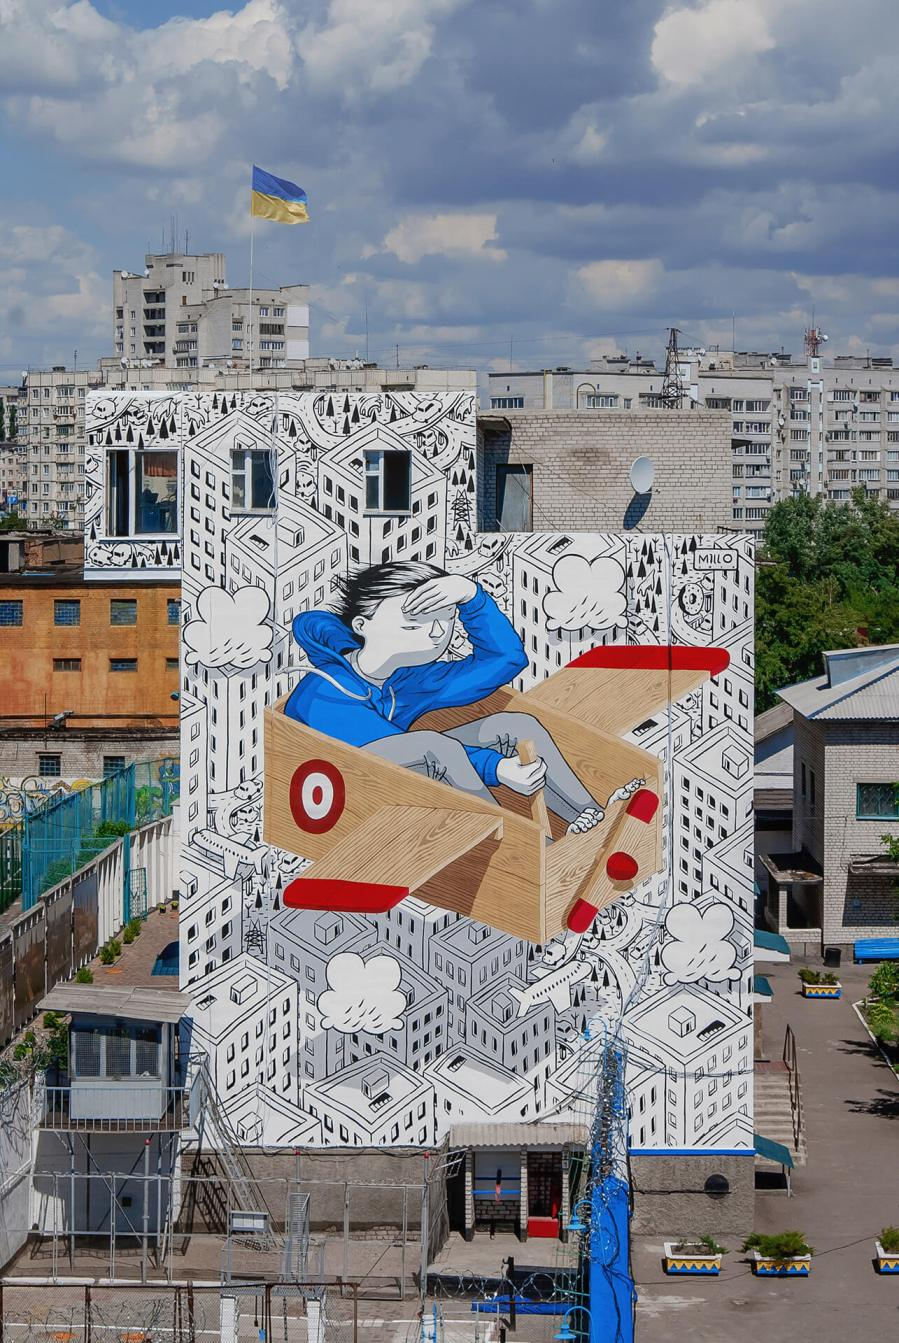 Millo, Back to School! Ukraine 2017. Photo credit Millo